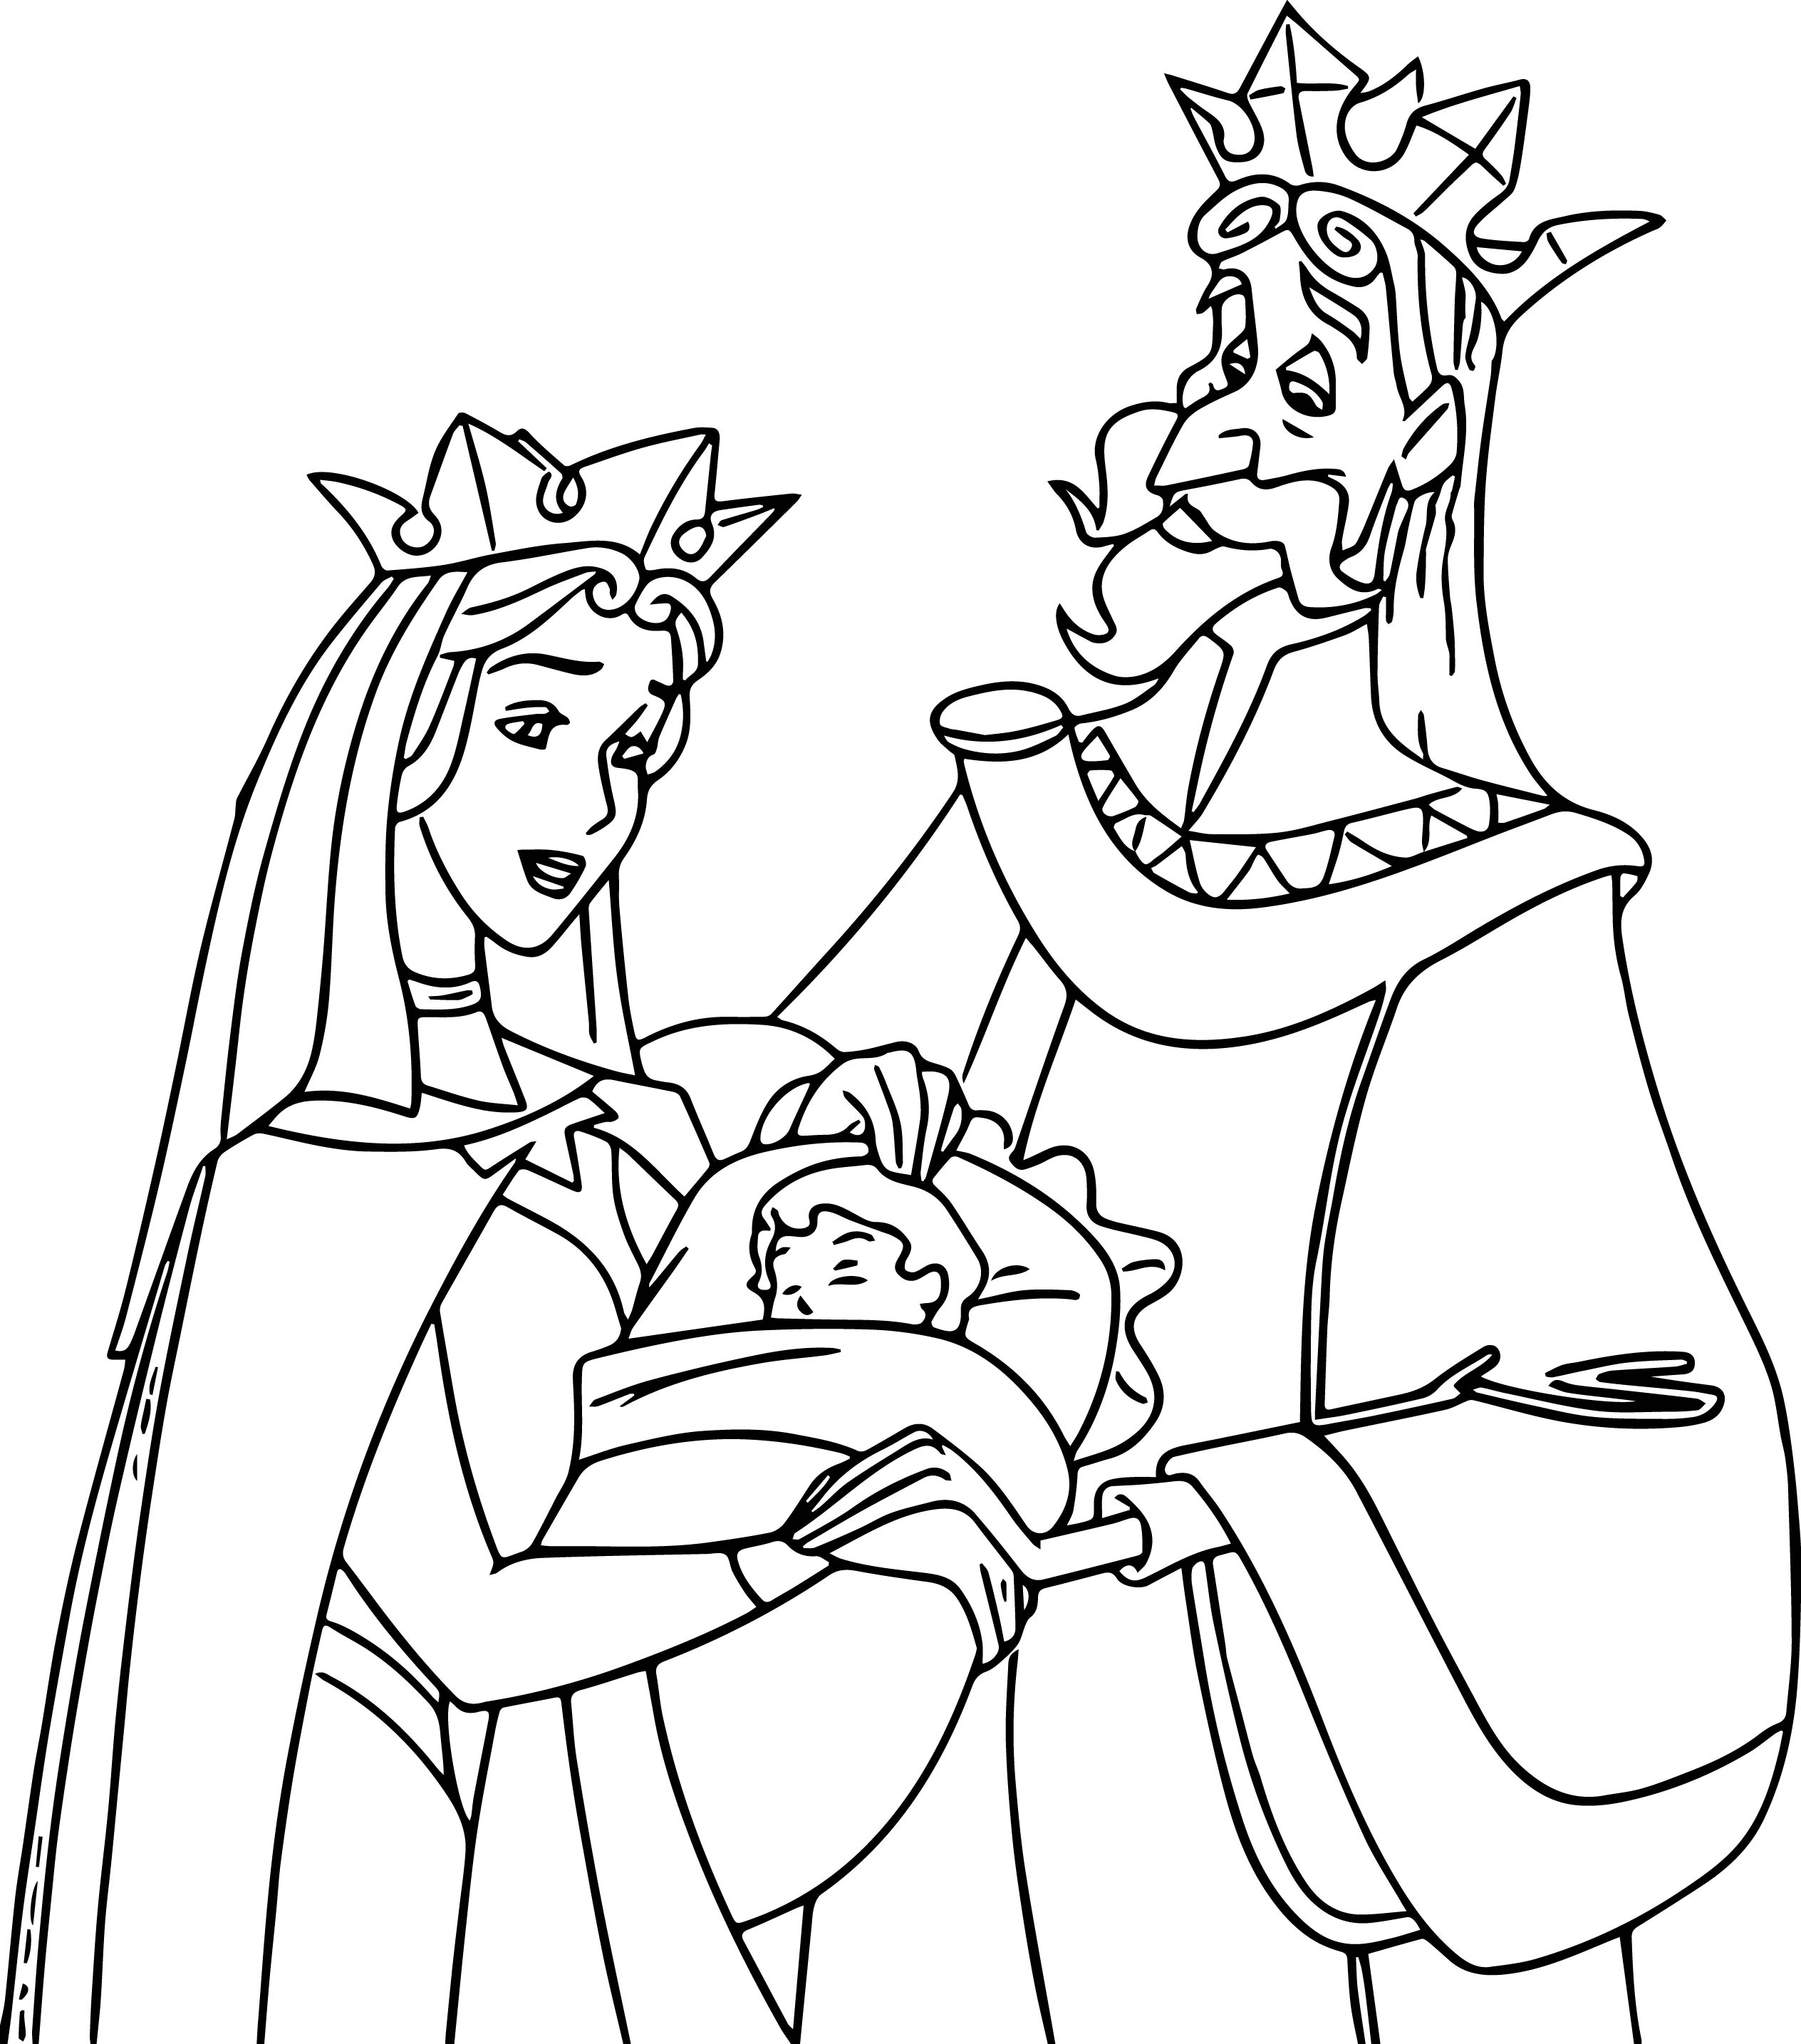 Sleeping beauty baby his mom and dad coloring page for Sleeping coloring pages